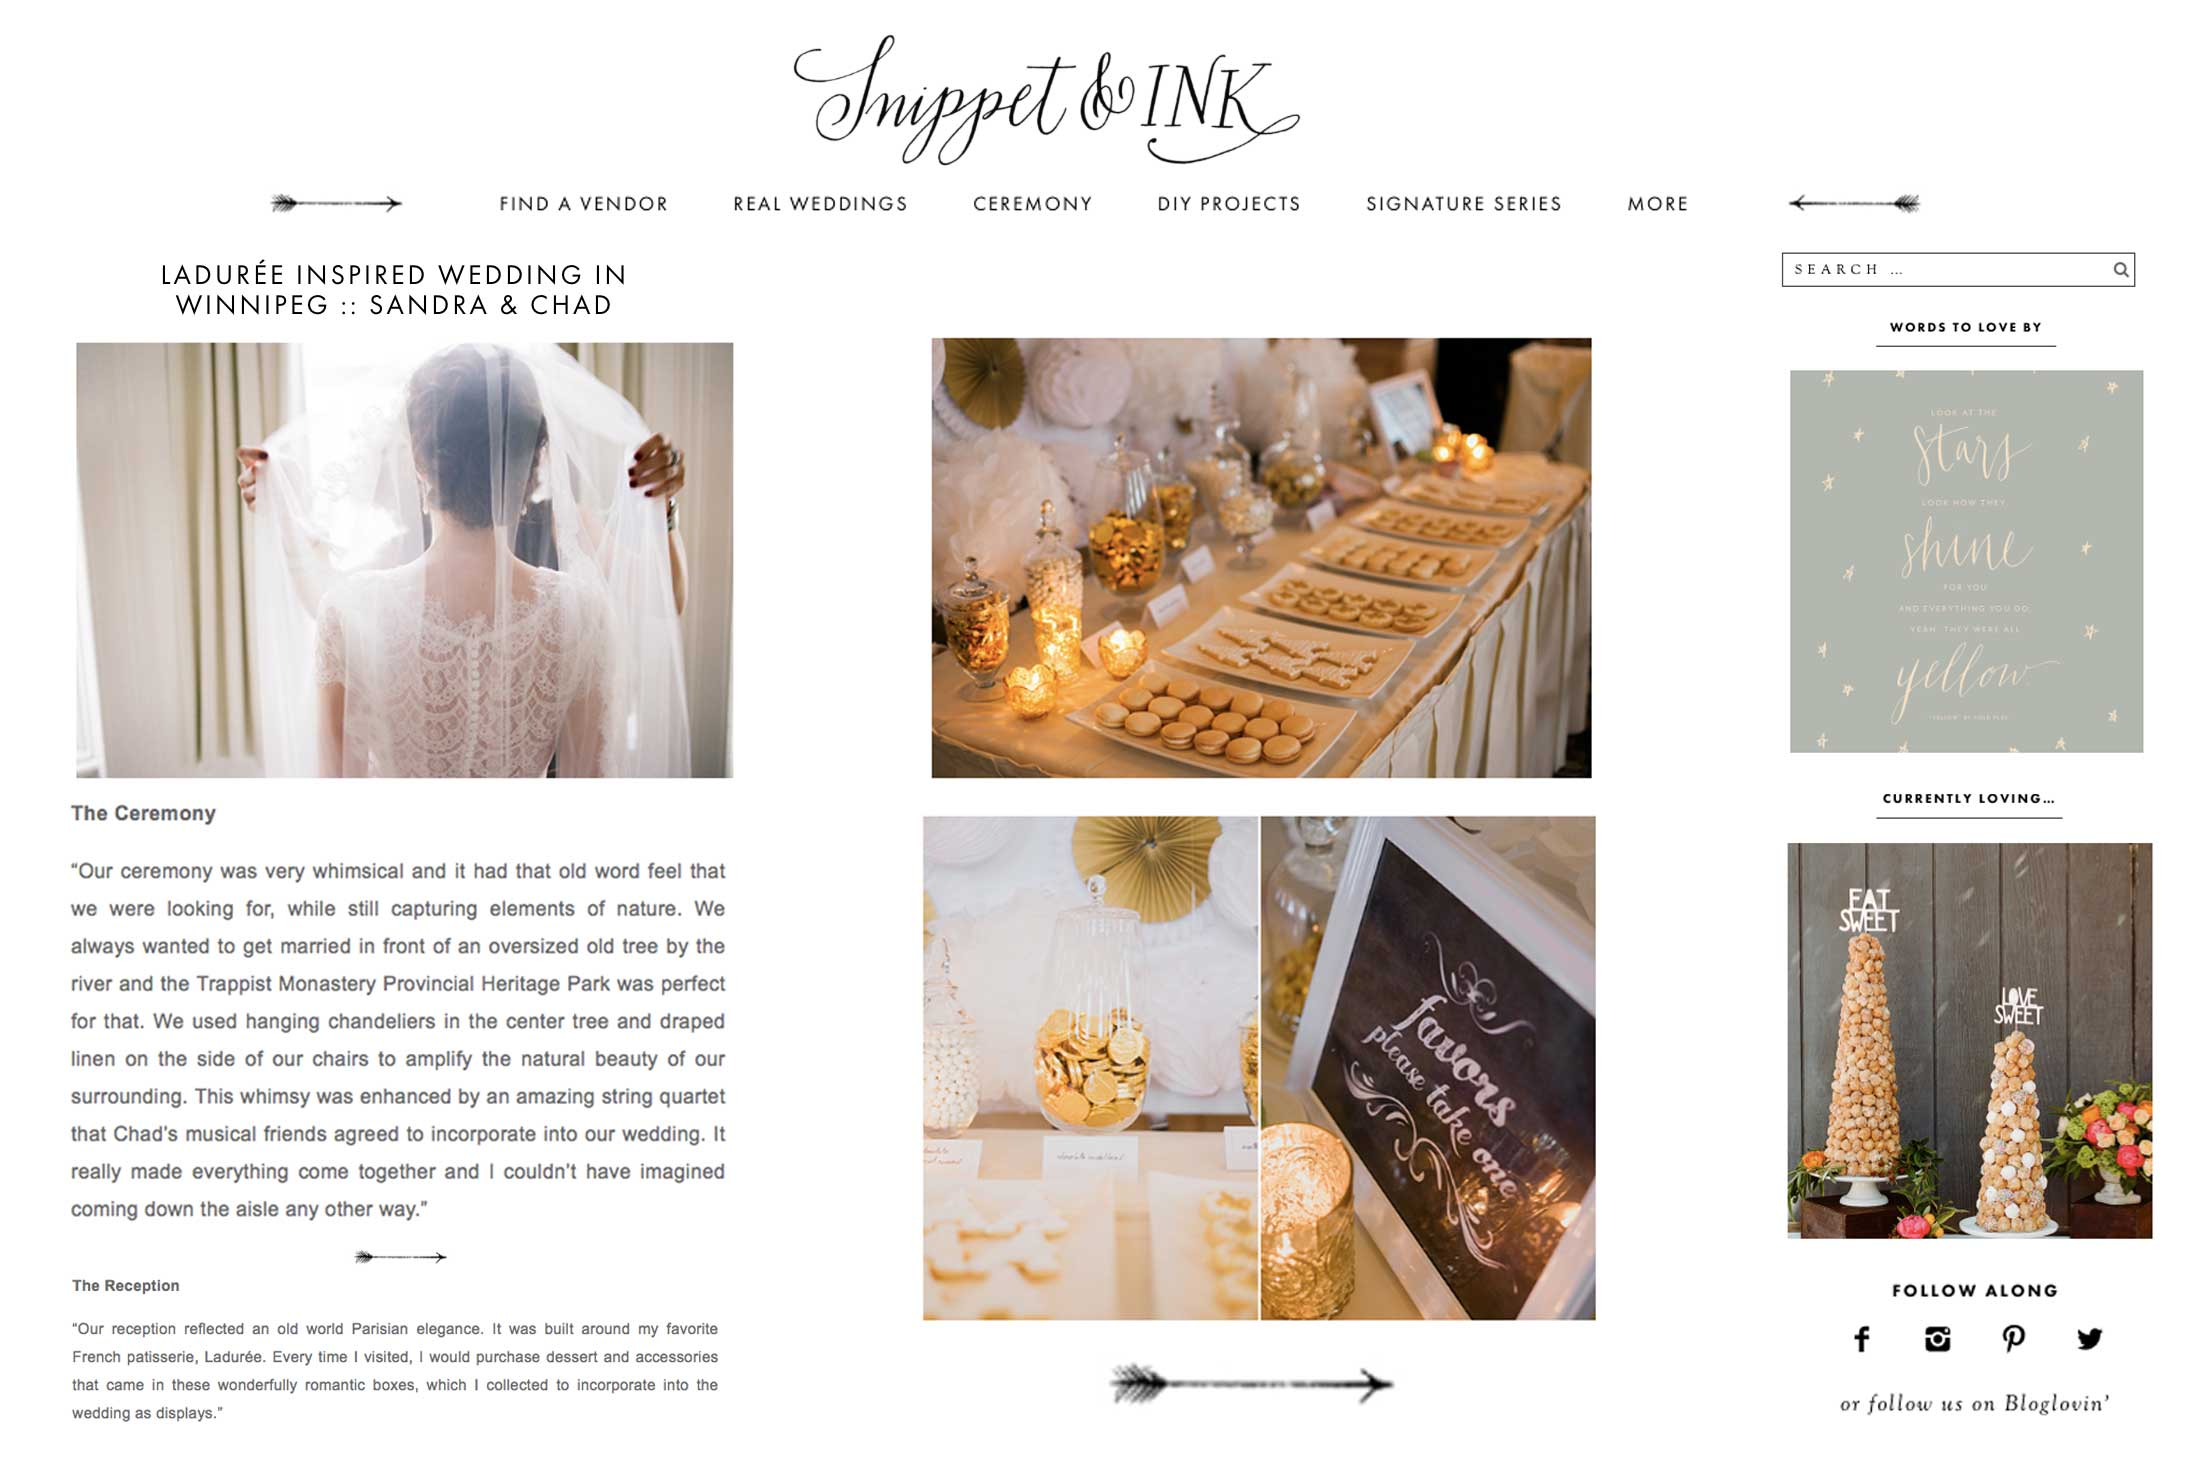 Winnipeg Wedding Planner and Inspiration Feature: Snippet + Ink